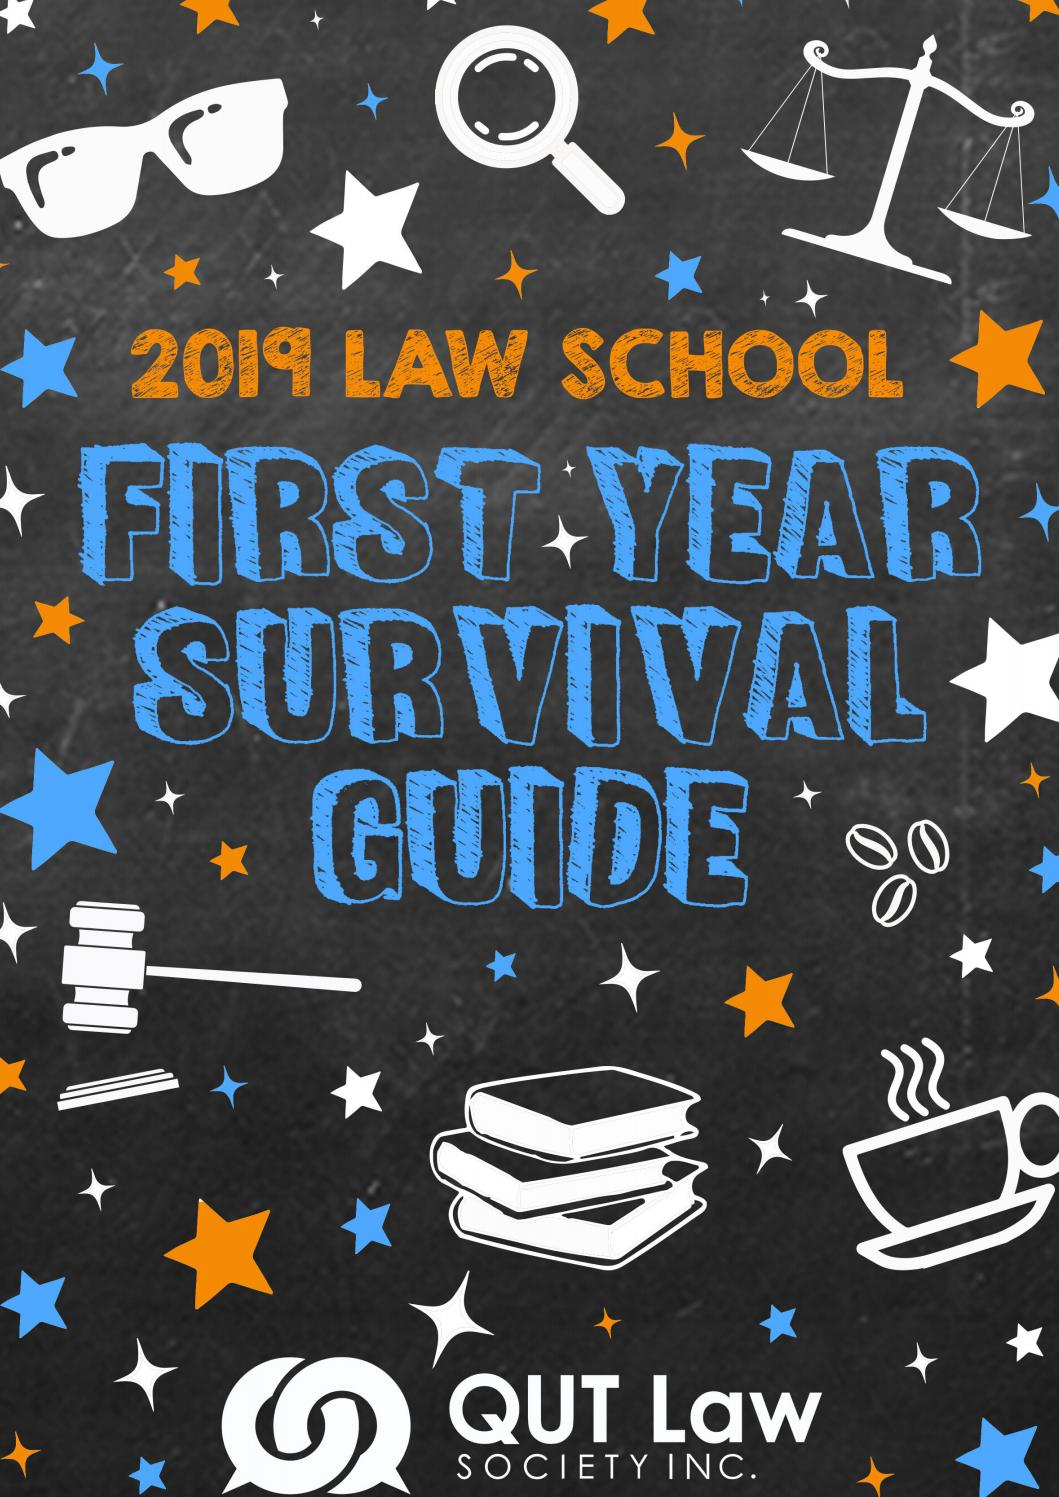 First Year Guide 2019 by QUT Law Society - issuu